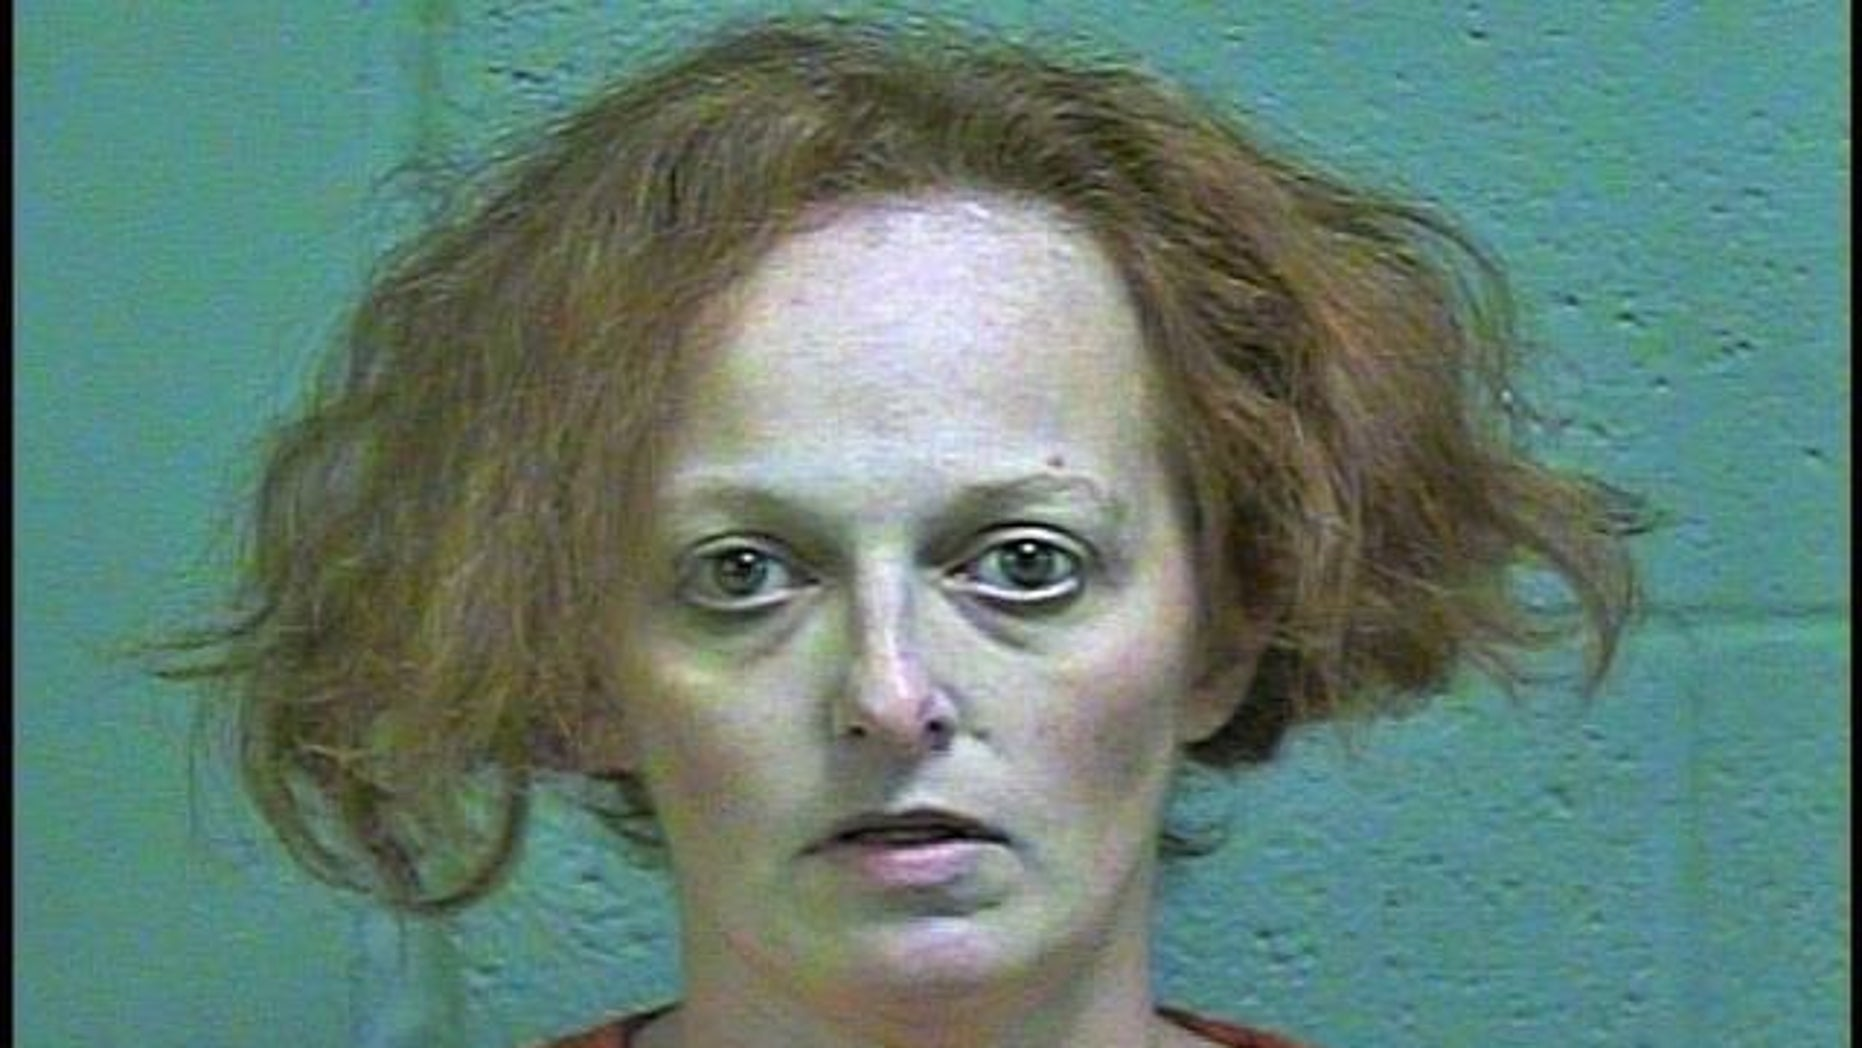 Amanda Freeman, 32, died a day after an alleged exorcism was performed on her by a nurse at the Oklahoma County jail.